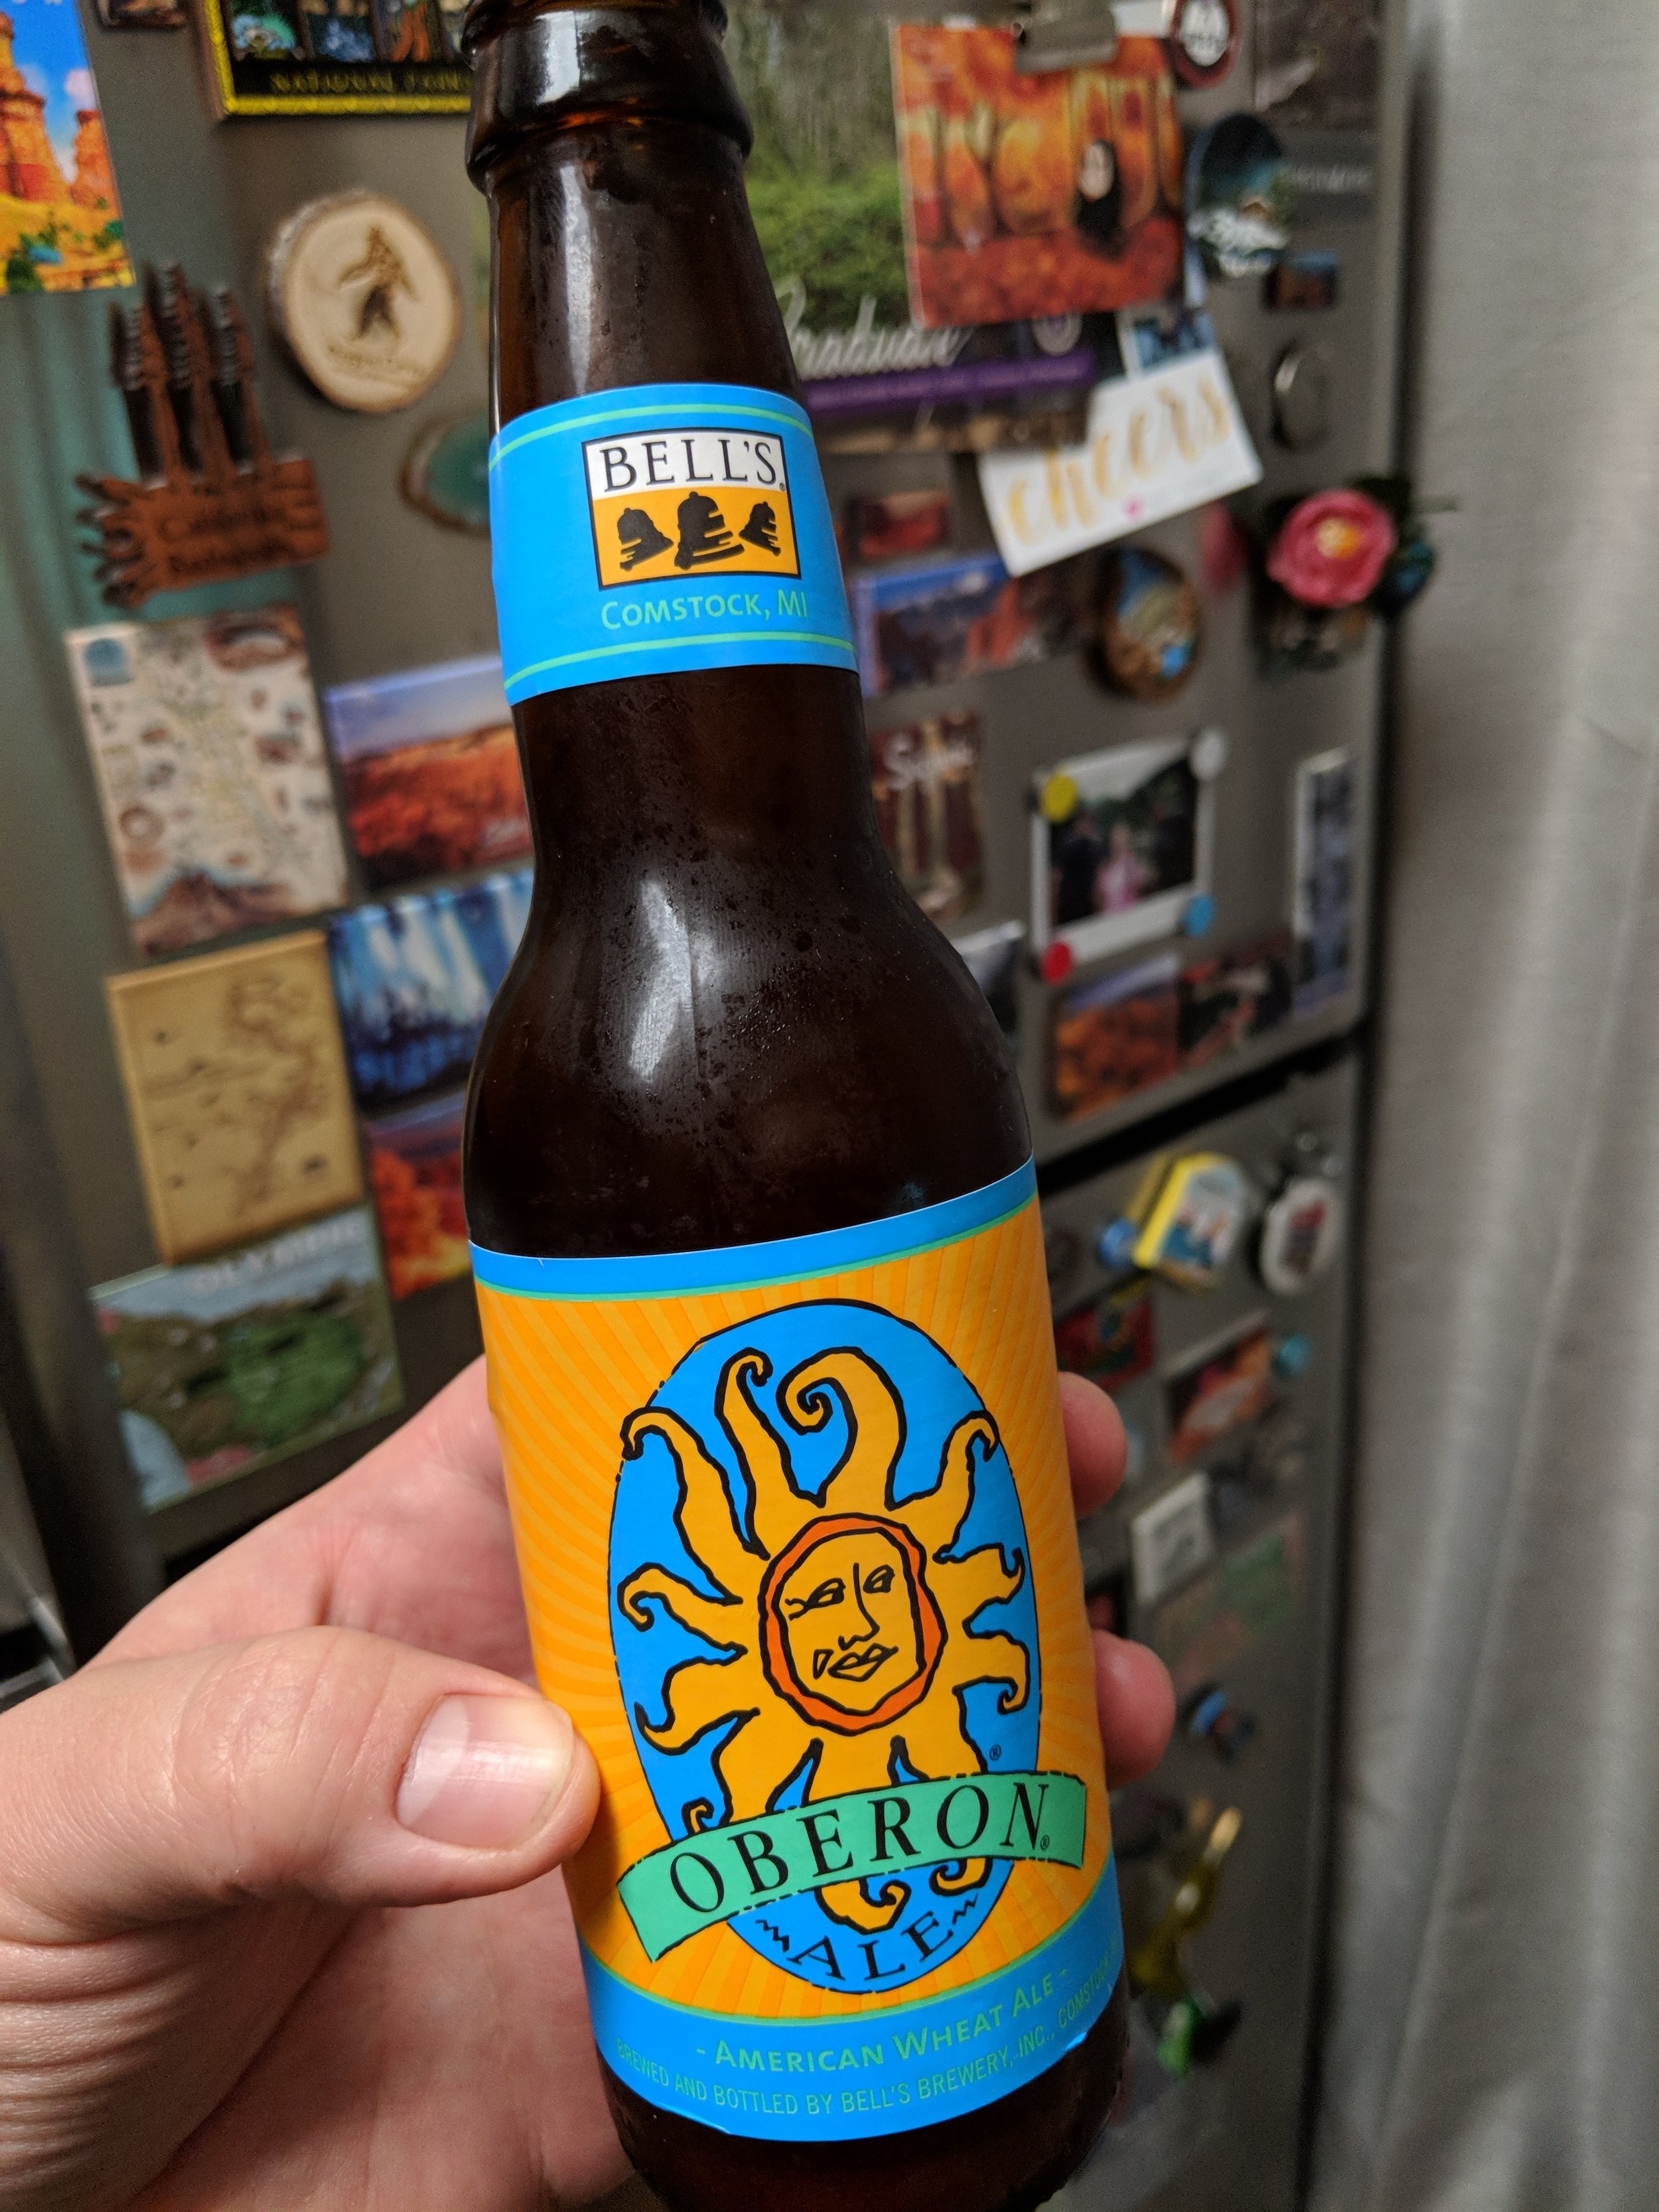 Don't mind the delicious Oberon in the way, just know there is a fridge full of magnets behind it.